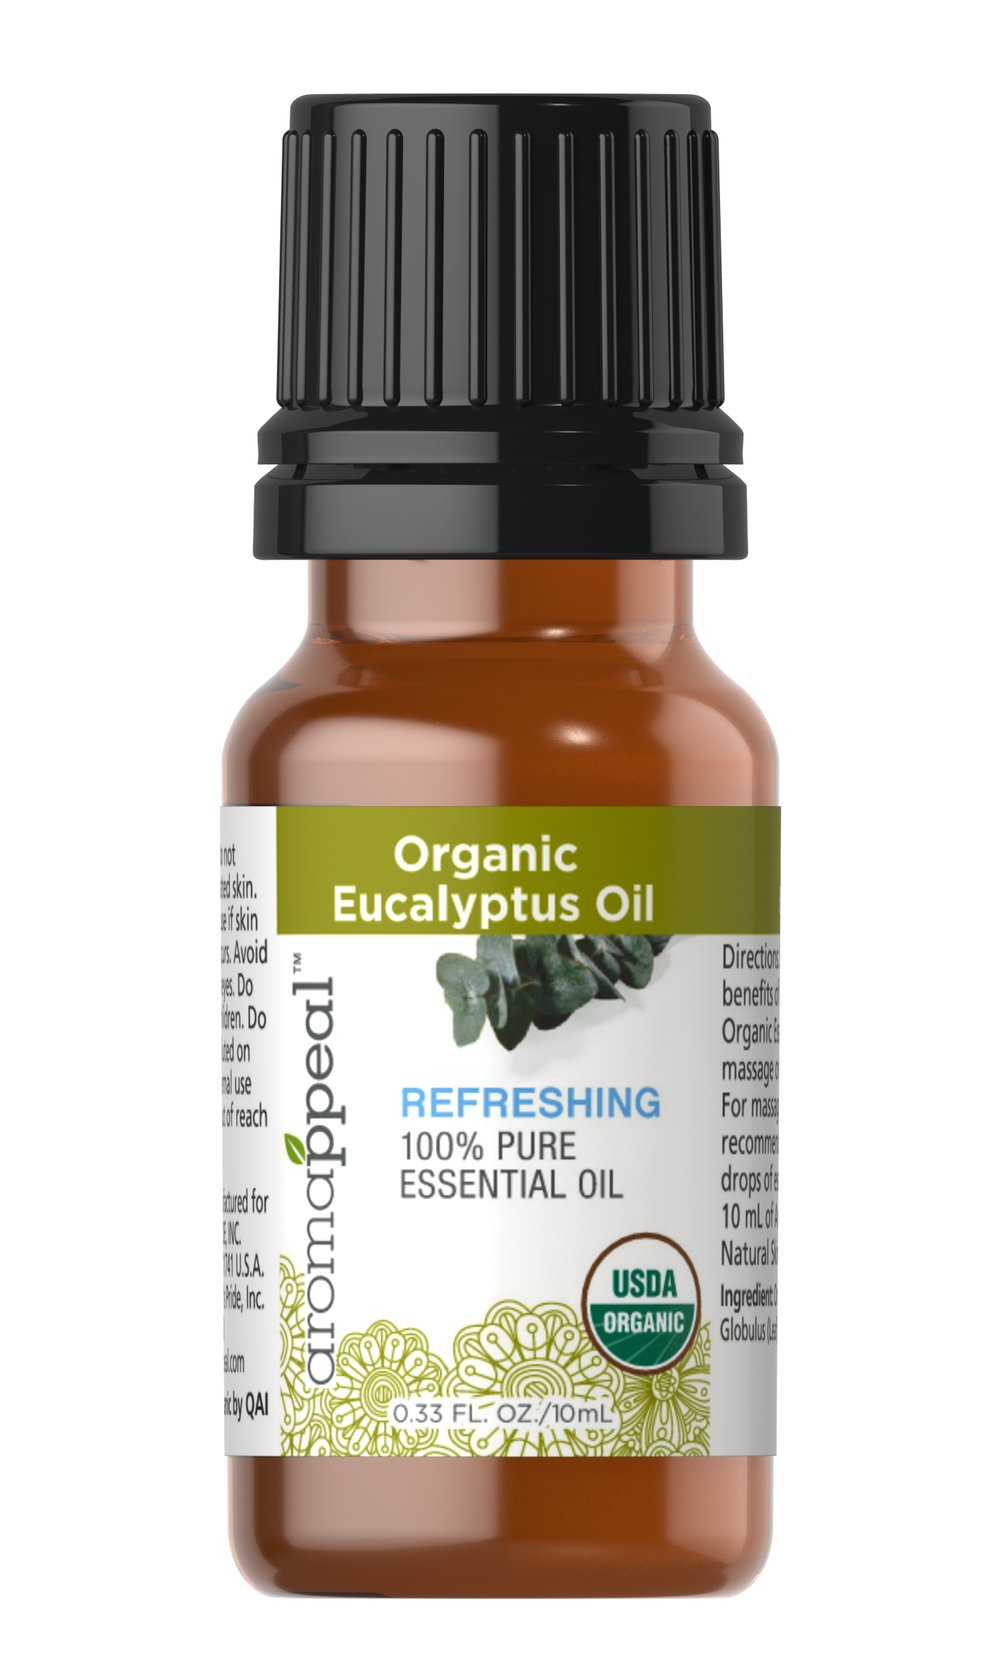 Organic Eucalyptus Oil <p><strong>NEW! Organic Aromappeal - USDA</strong><br /><br />Eucalyptus has a powerfully woody, slightly sweet scent that can cultivate your senses and refresh your outlook.<br /></p><ul><li>Traditional Uses: Soothing and rejuvenating.<br /></li><li>    History: Eucalyptus has a powerfully woody, slightly sweet scent that can cultivate your senses and refresh your outlook. O